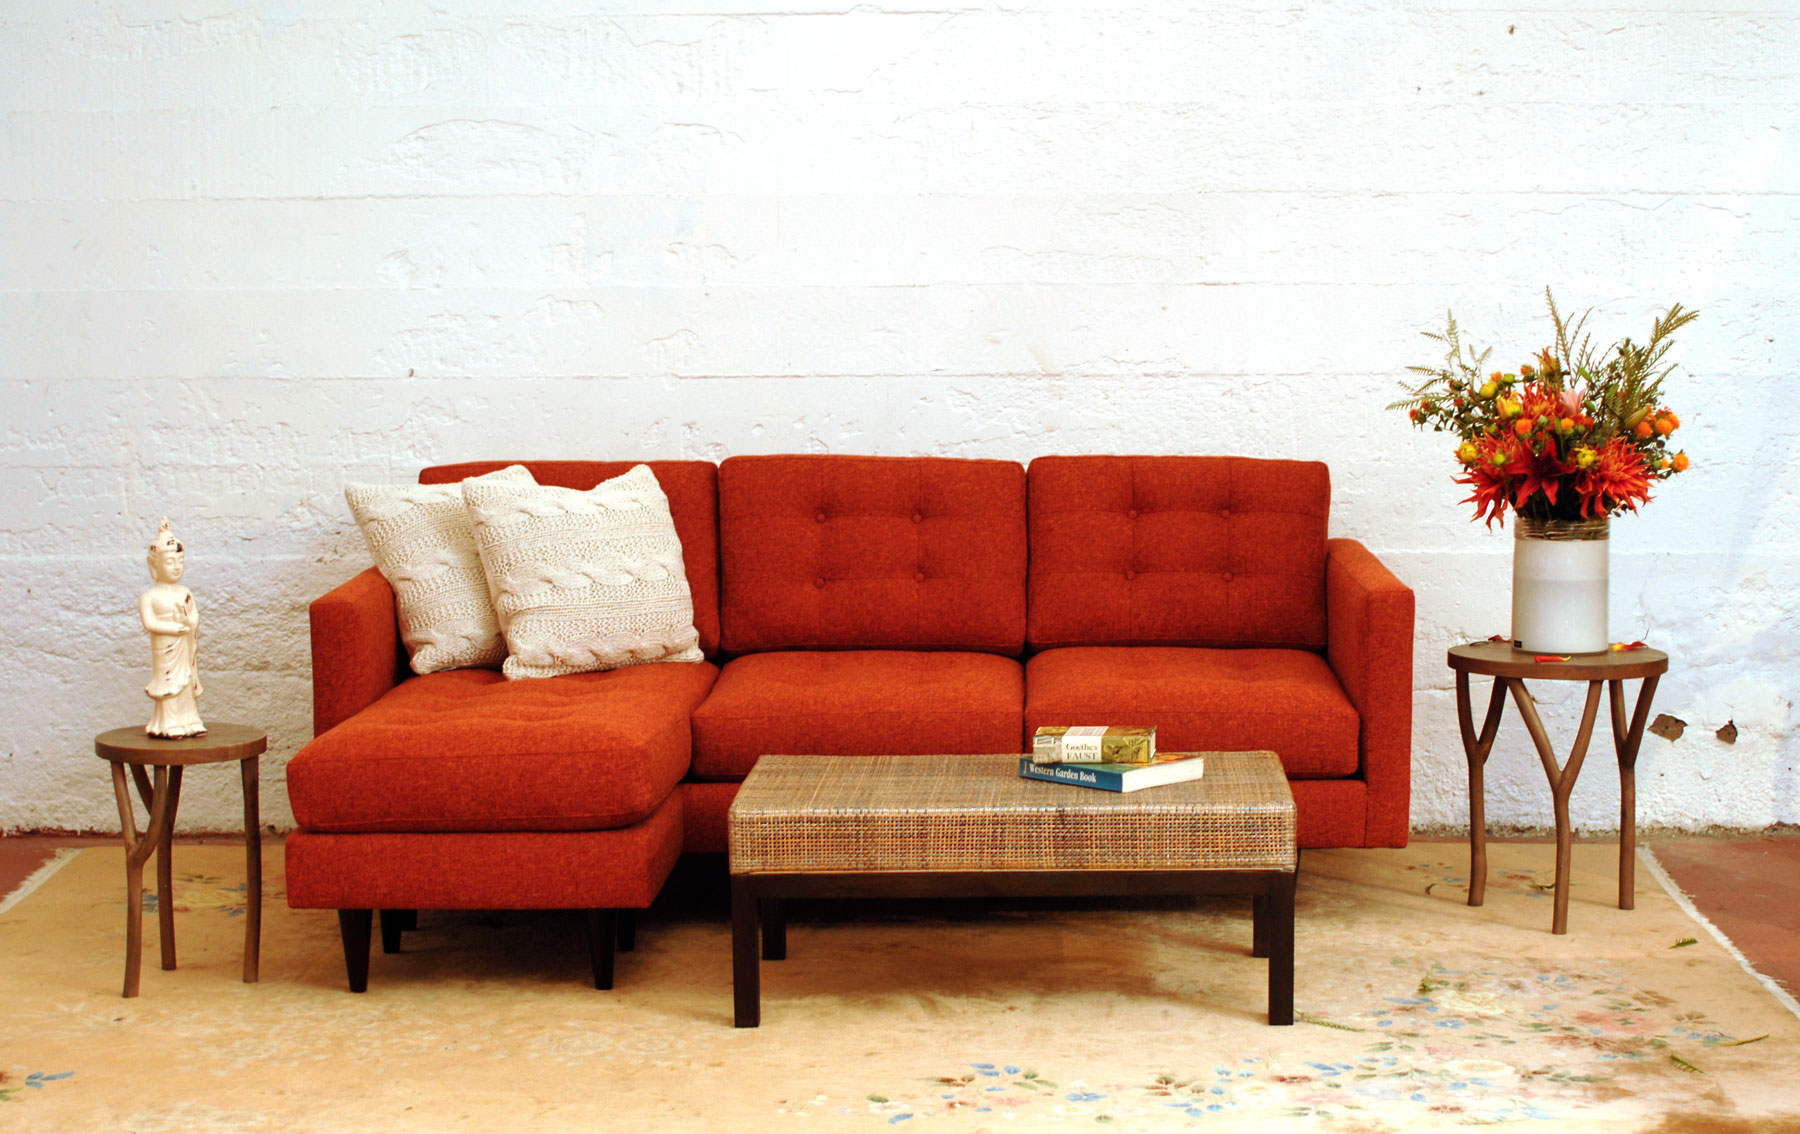 Harrington Galleries couch inspired by santa fe red rocks